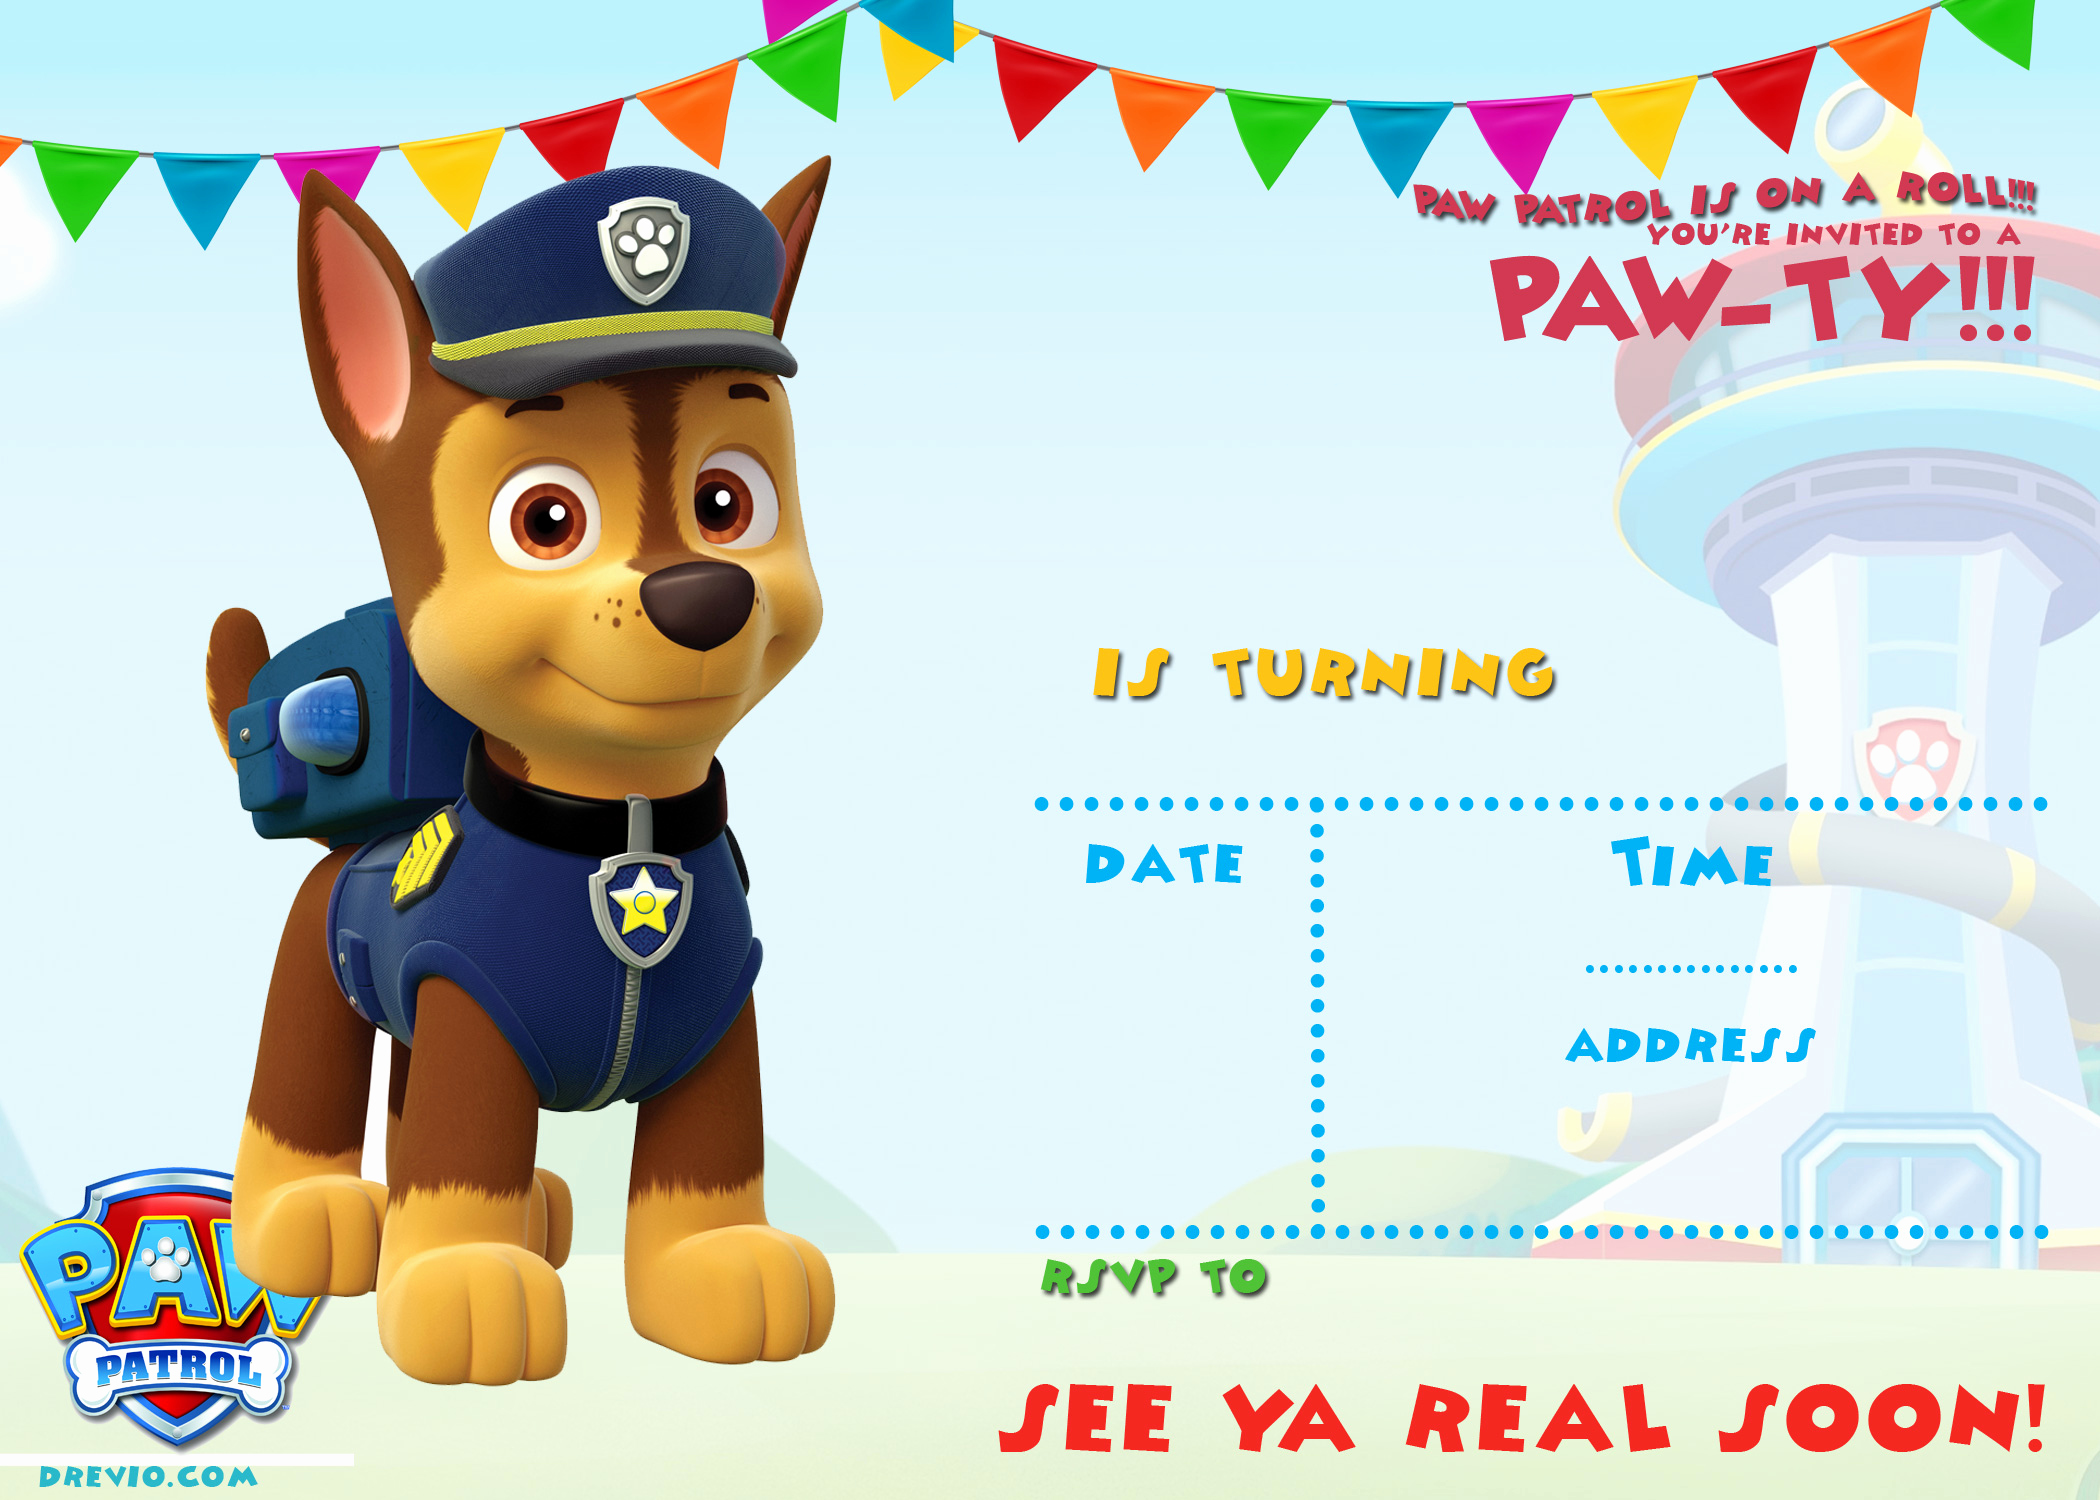 Paw Patrol Birthday Invitation Template Elegant Free Printable Paw Patrol Birthday Invitation Ideas